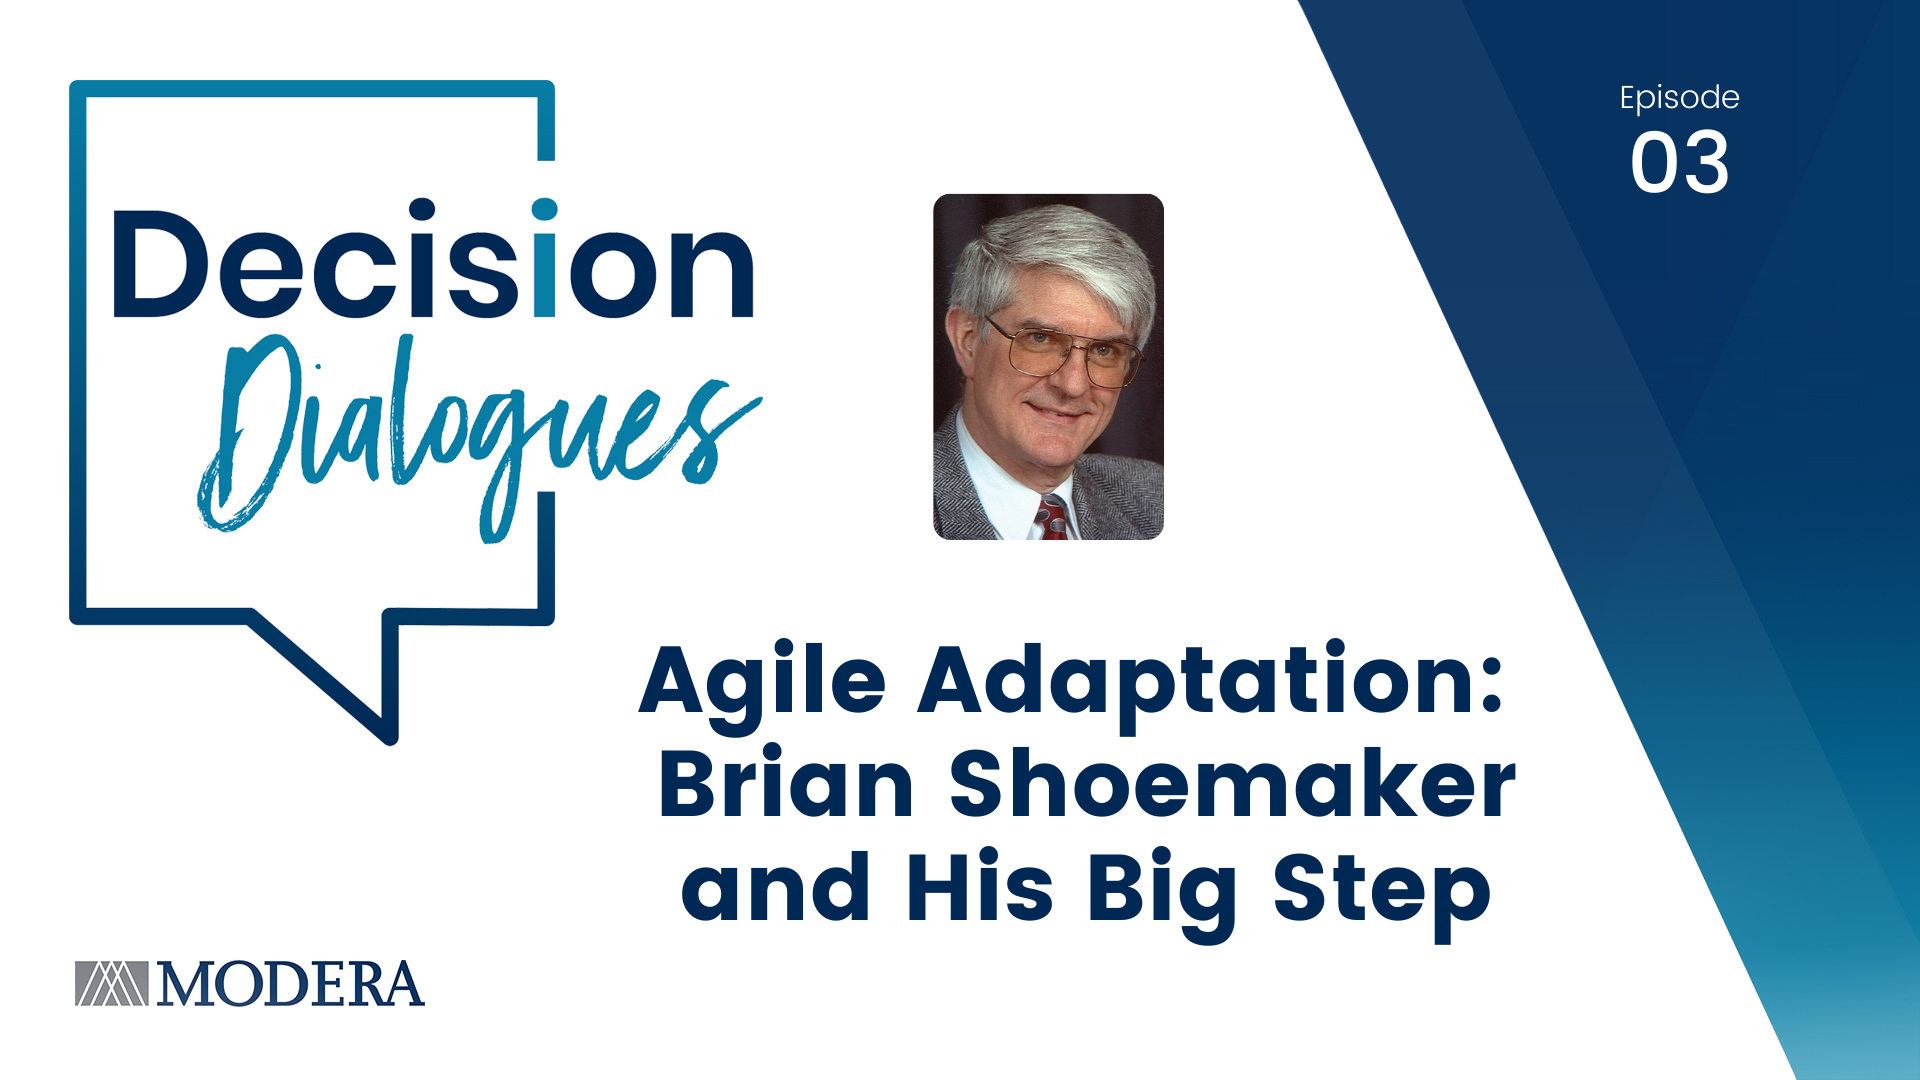 Decision Dialogues Episode 03 - Agile Adaptation: Brian Shoemaker and His Big Step